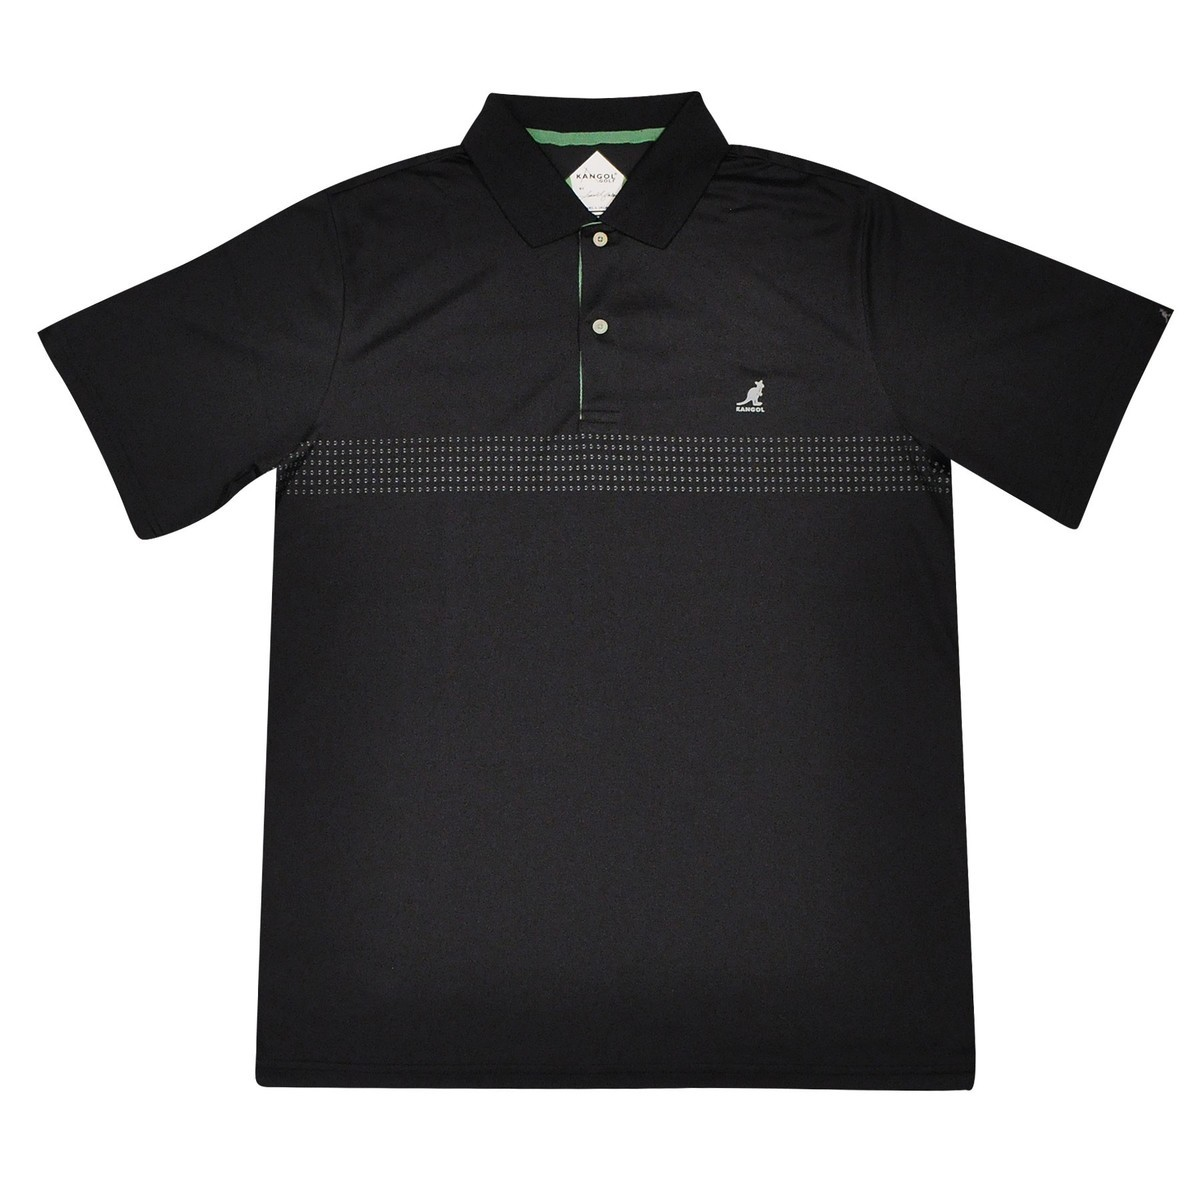 Kangol Golf by SLJ Samuel L. Jackson Golf Ventair Polo Shirt BLACK Polo Shirt 帽子 BLACK